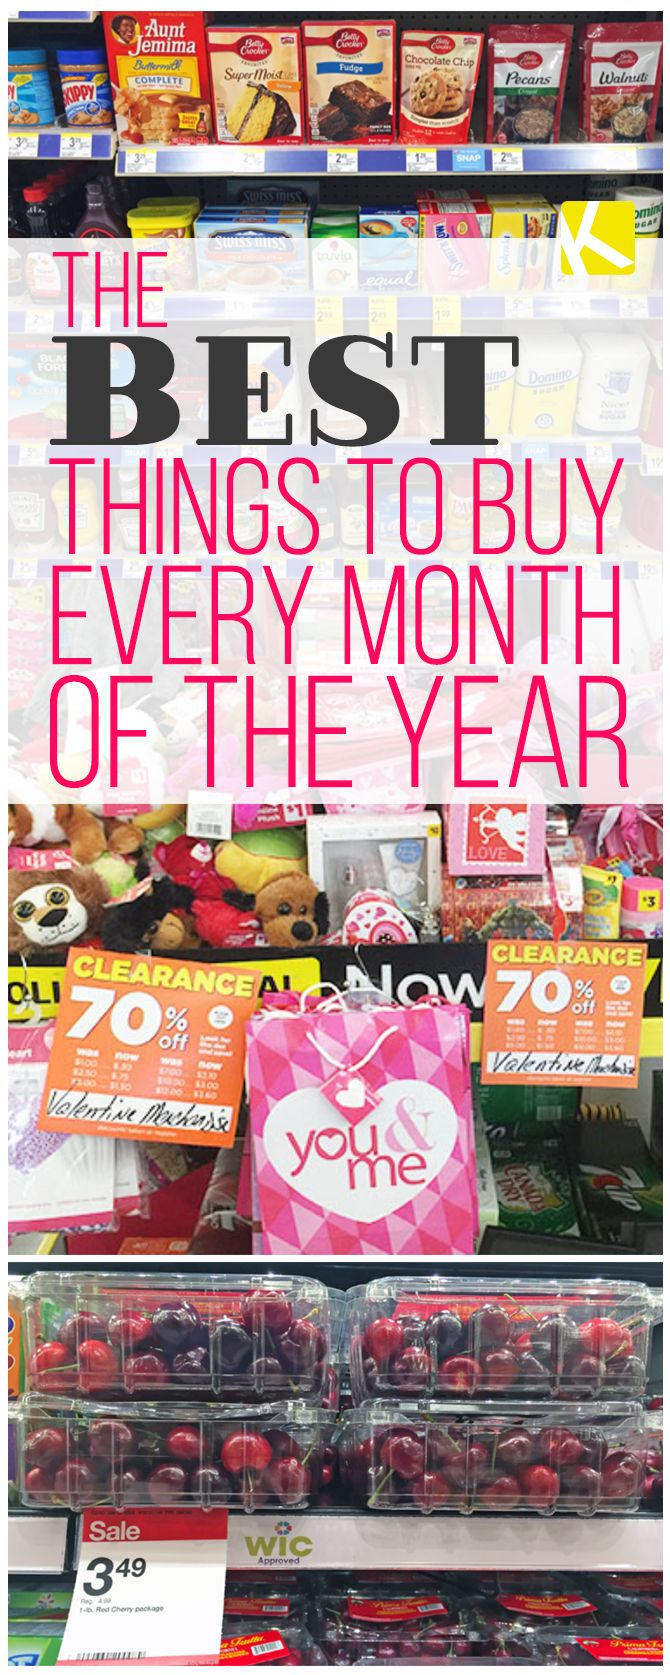 The Best Time to Buy Everything by Month of the Year